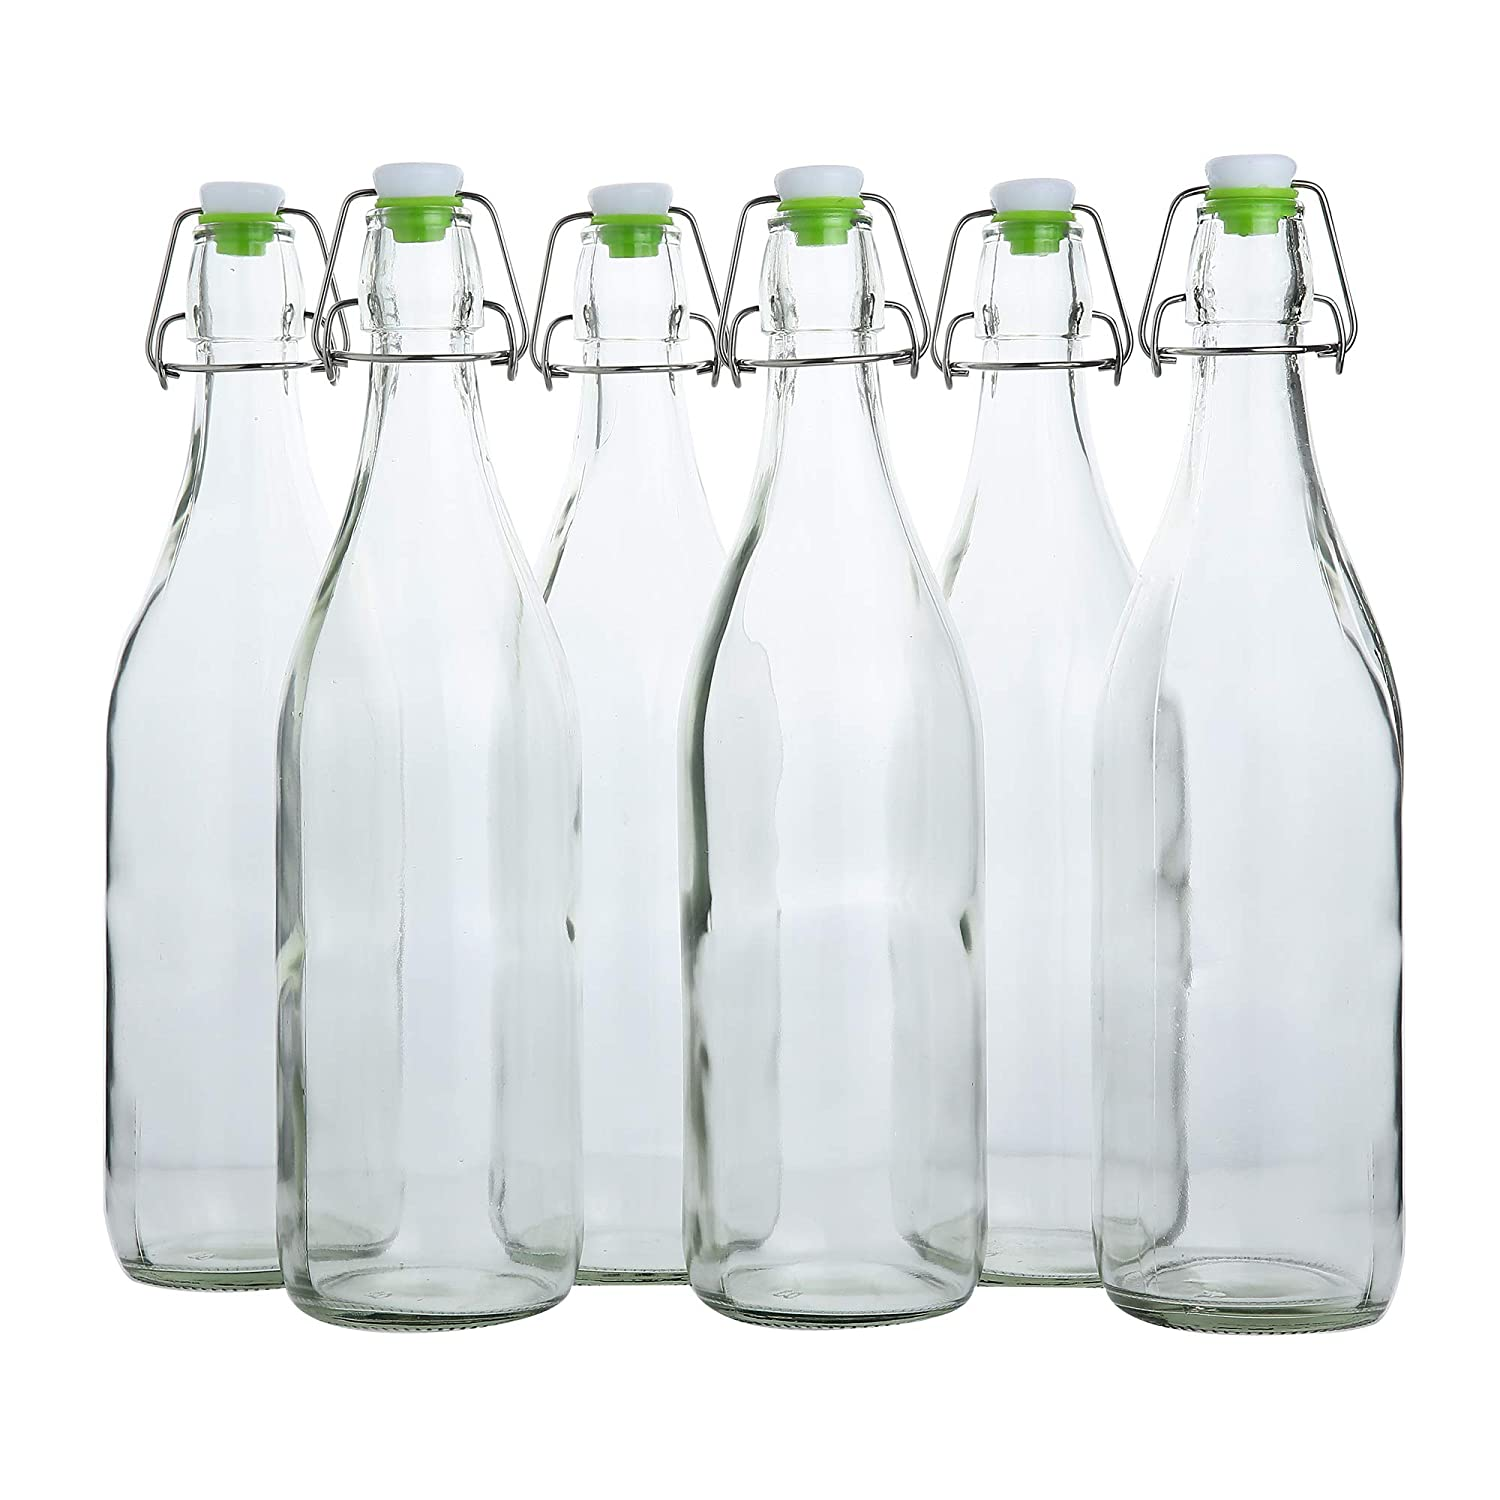 Set of 6 flip top glass bottles